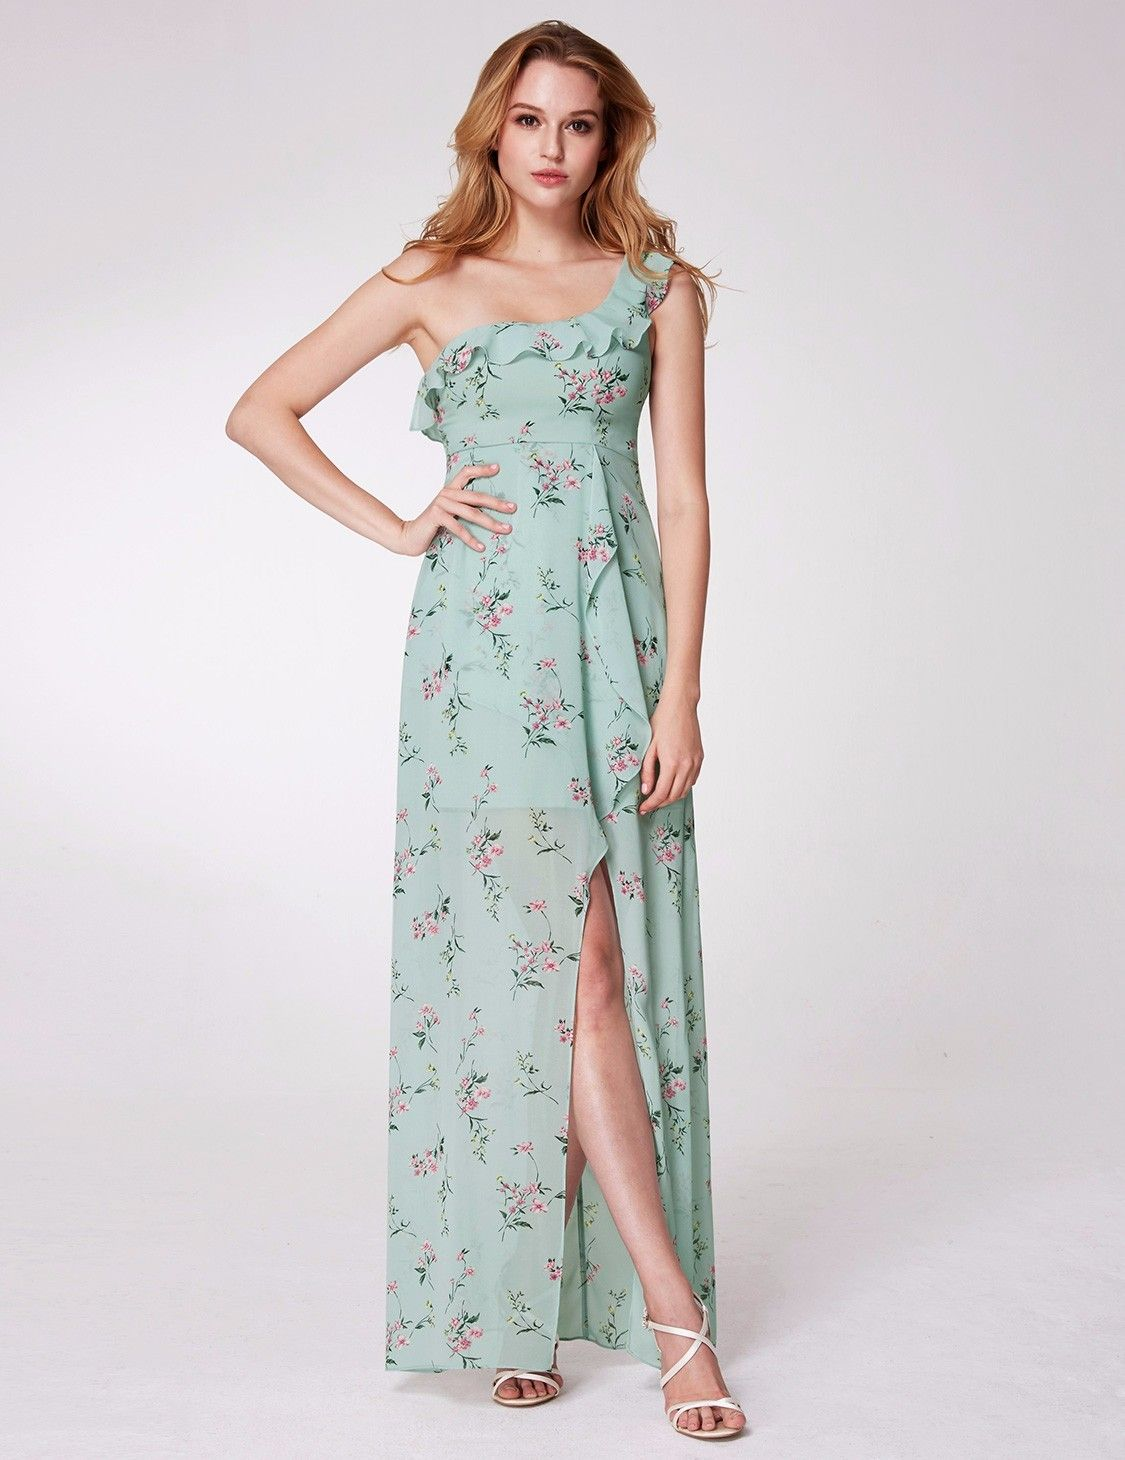 Floral print wedding guest dress  One Shoulder Floral Print High Low Dress  Bridesmaids Dresses and